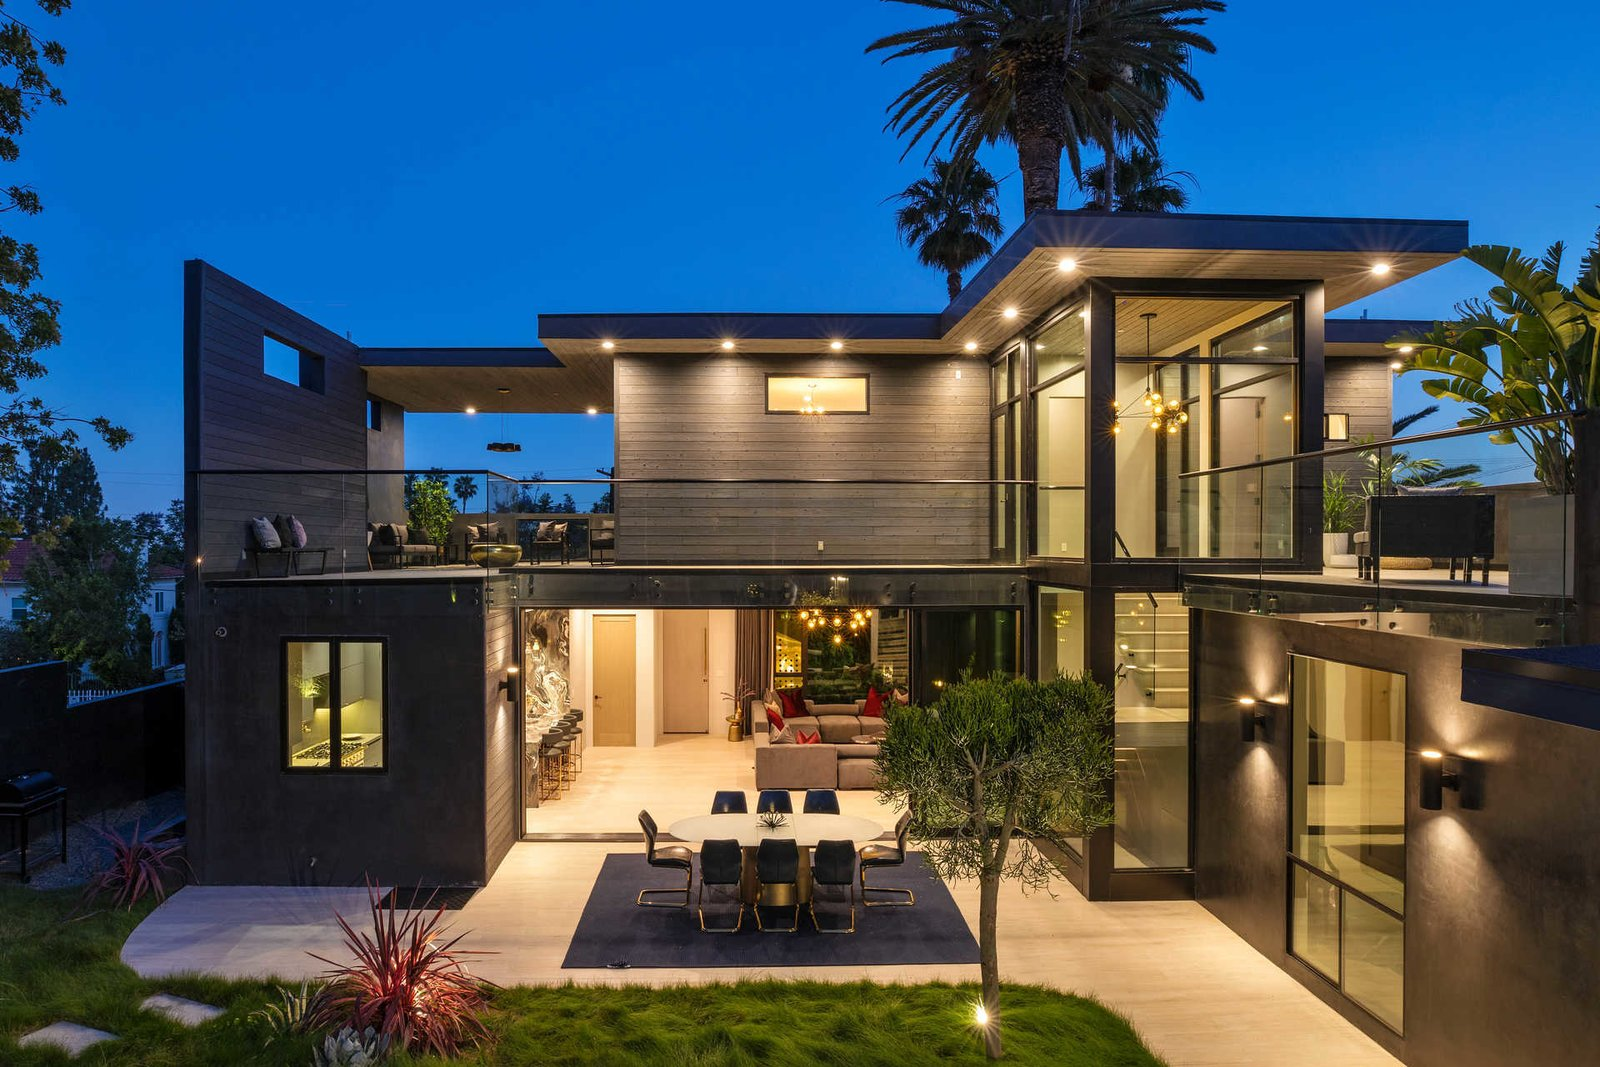 Tagged: Outdoor, Back Yard, Walkways, and Trees.  Italian Modernist Home by Zillow